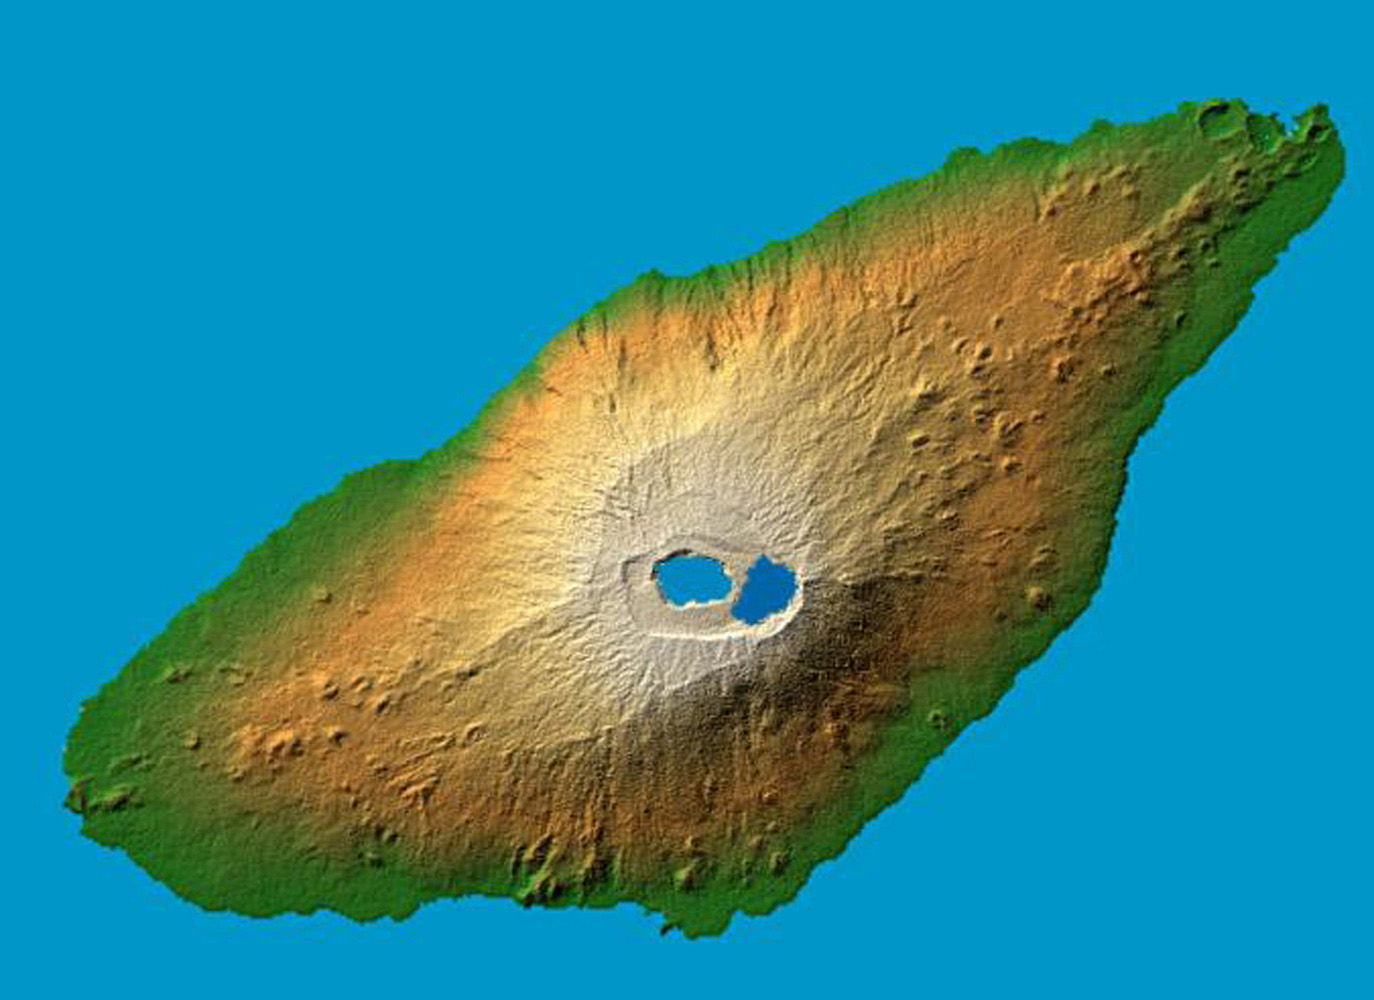 The recently active volcano Mt. Manaro is the dominant feature in this shaded relief image from NASA's Shuttle Radar Topography Mission of Ambae Island, part of the Vanuatu archipelago located 1400 miles northeast of Sydney, Australia.